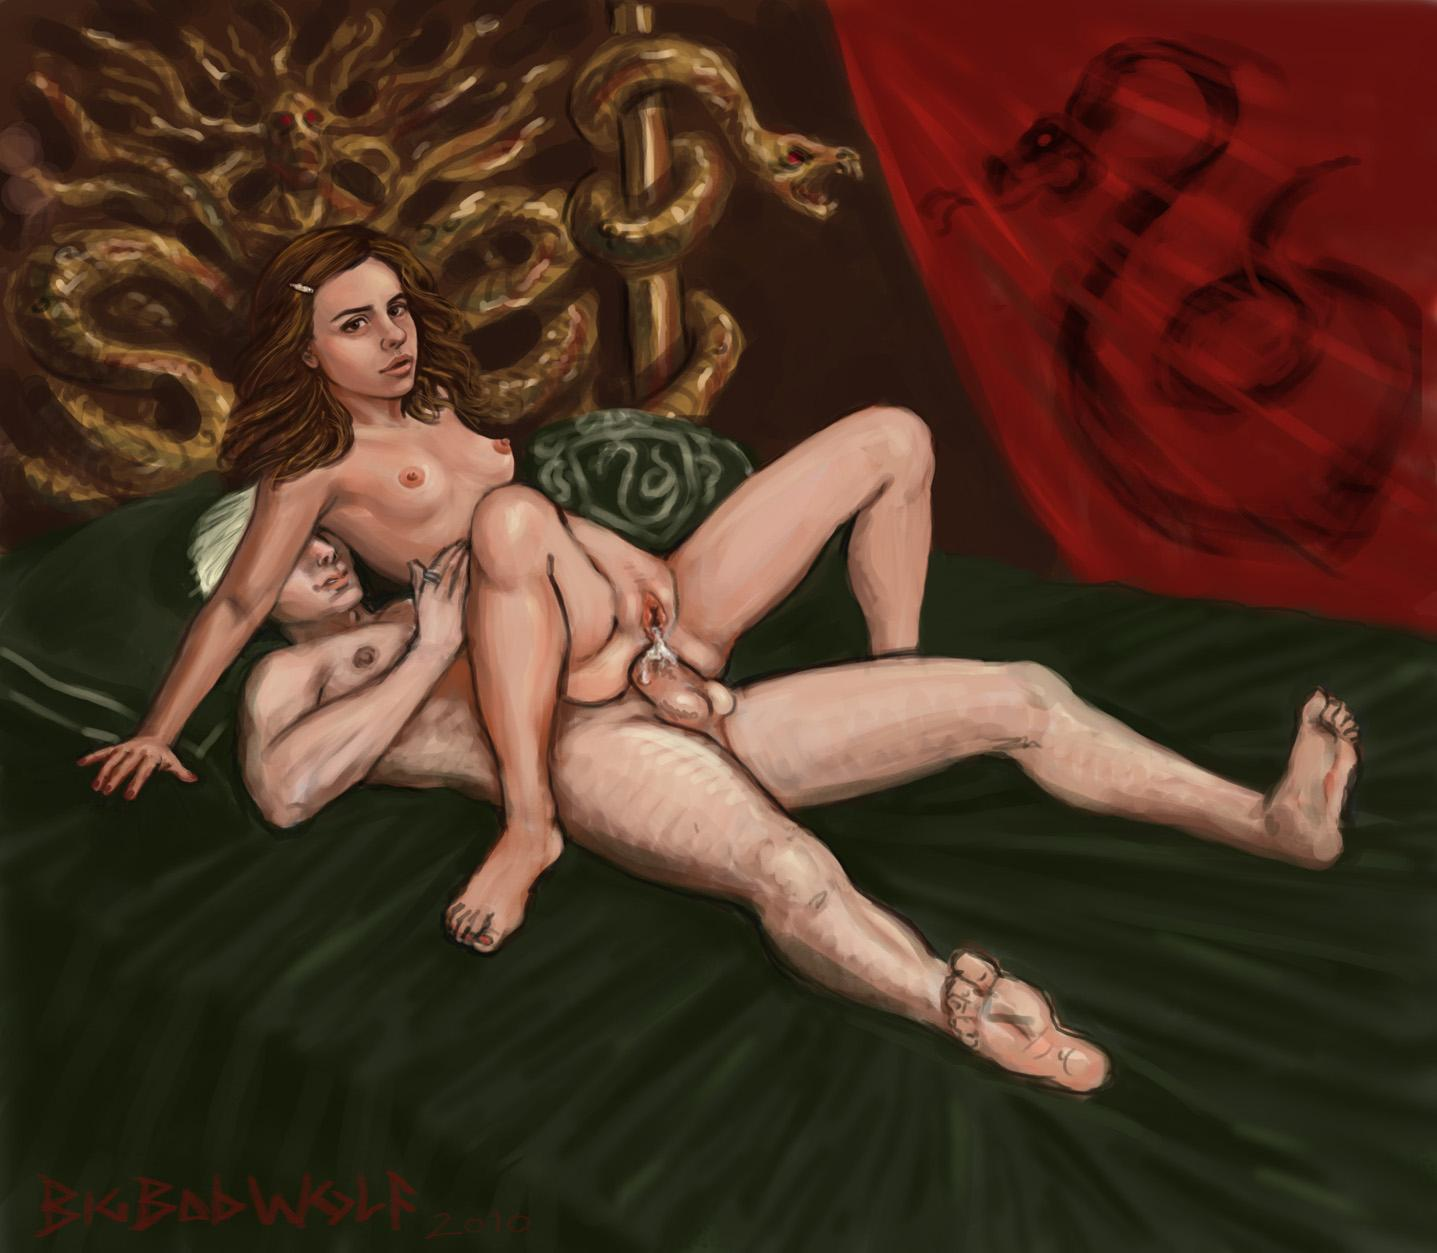 Draco And Hermione Adult Fanfiction - Elvira Naked